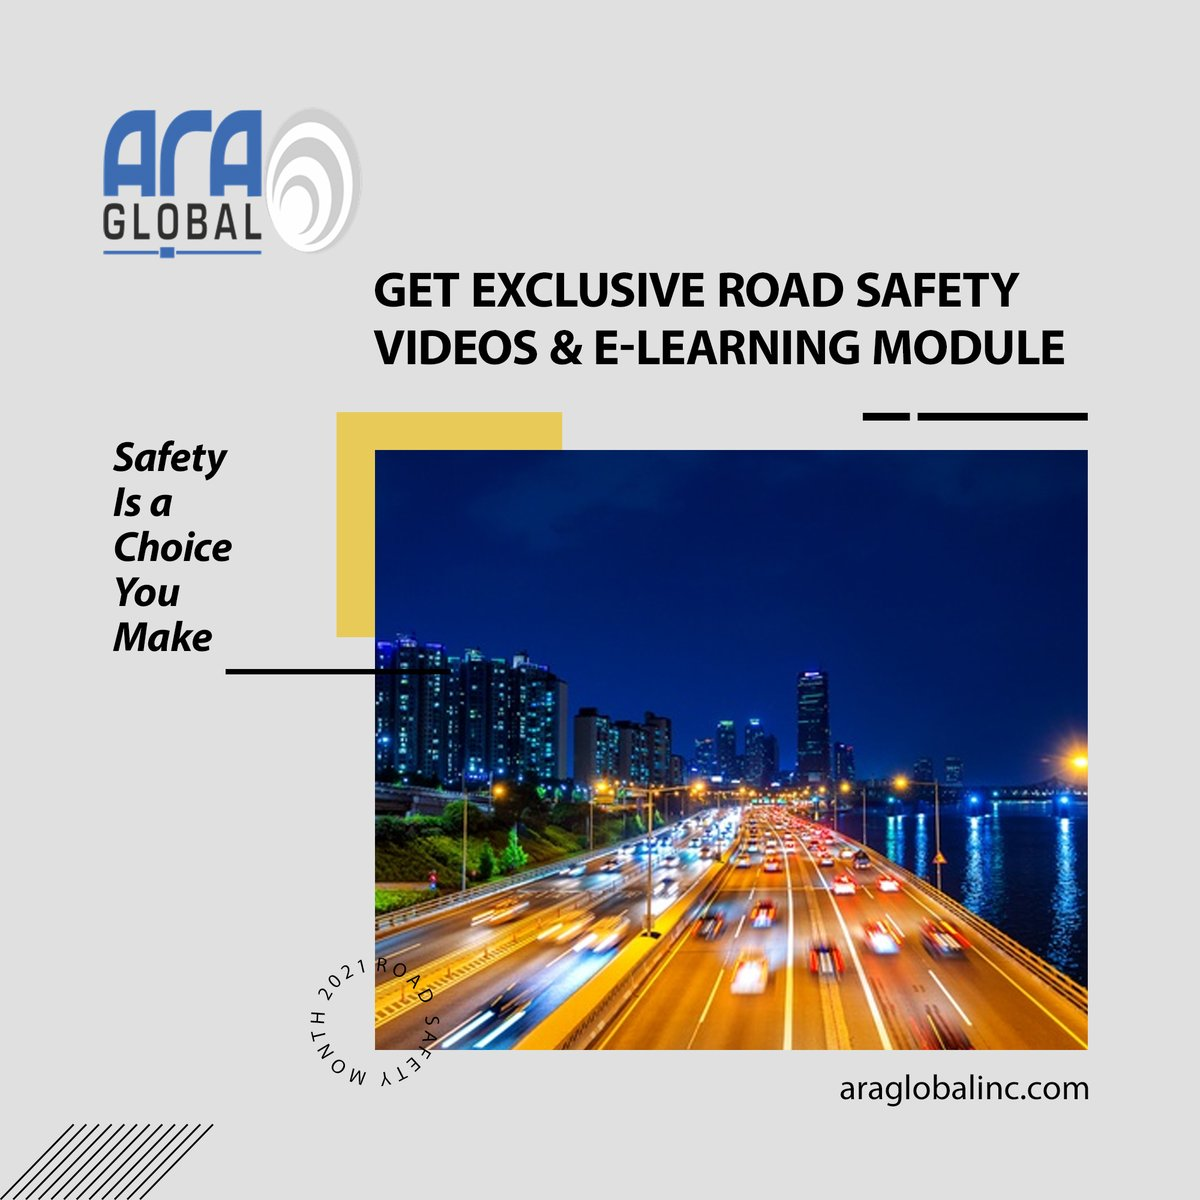 Safety is a Choice You Make  Get Exclusive Road Safety Videos & e-Learning Modules.  For Training Enquiry Deepika +91 6383 597 155 Yamini +91 7397 755 251  #ARAGlobal #RoadSafety #RoadAccident #roadsafetyweek #Traffic #trafficsigns #roadtrip